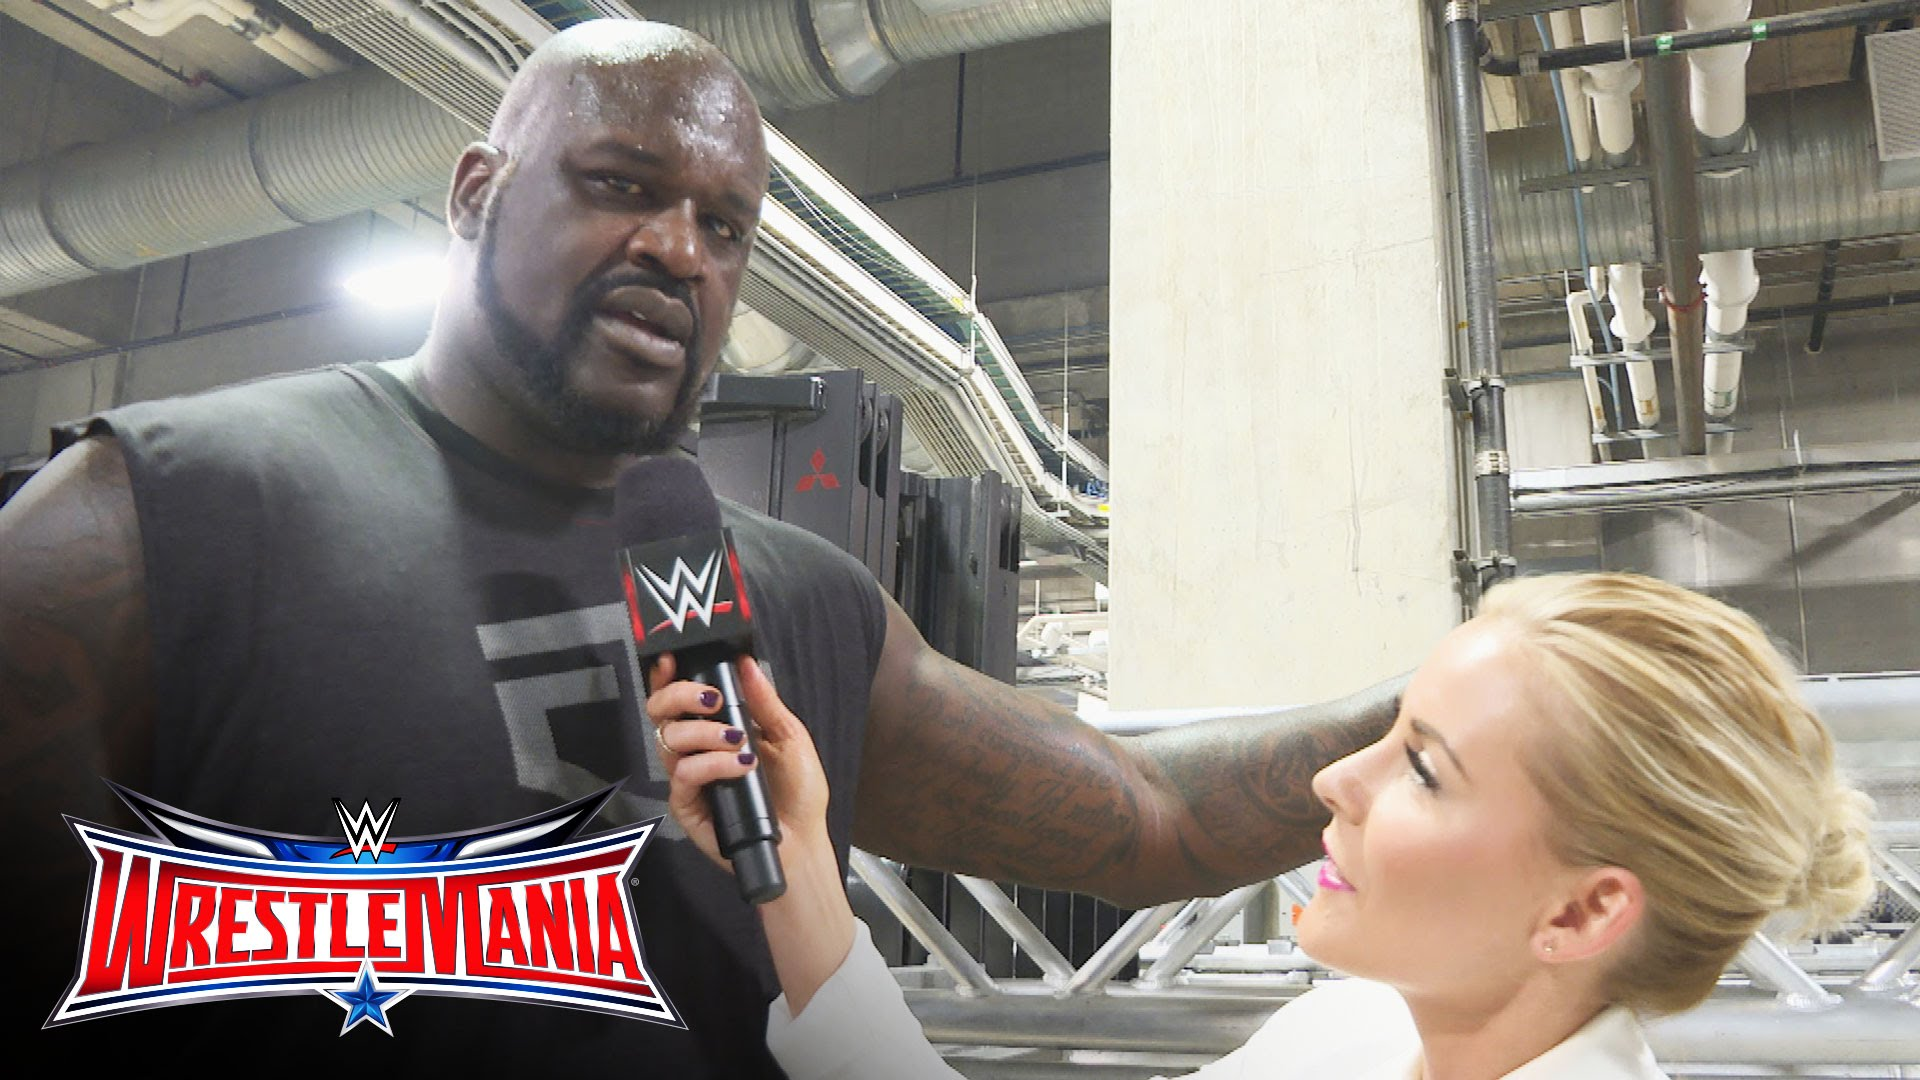 Shaq issues a challenge to Big Show after elimination at Wrestle Mania 32